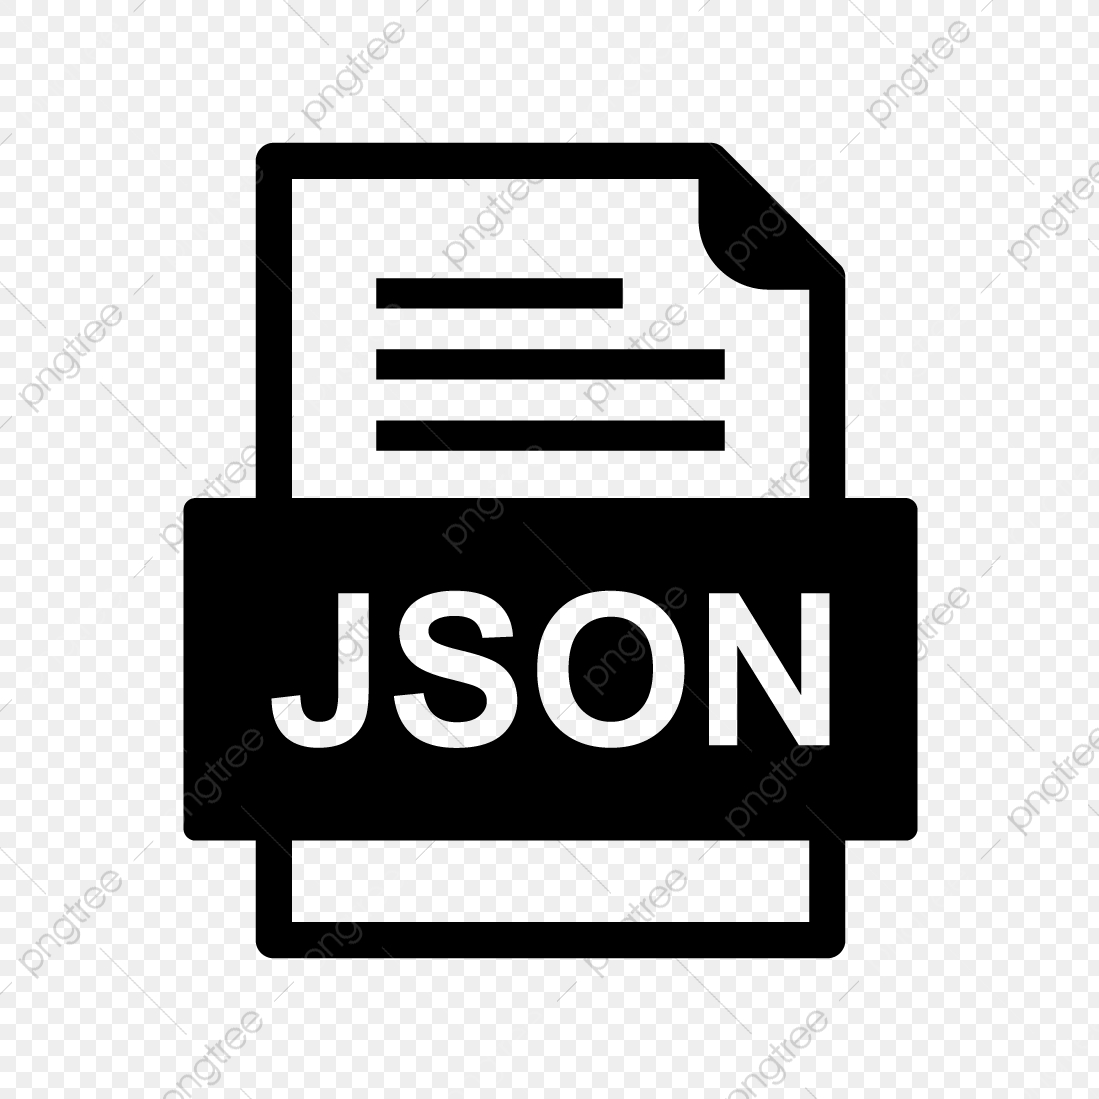 Json File Document Icon, Json, Document, File PNG and Vector